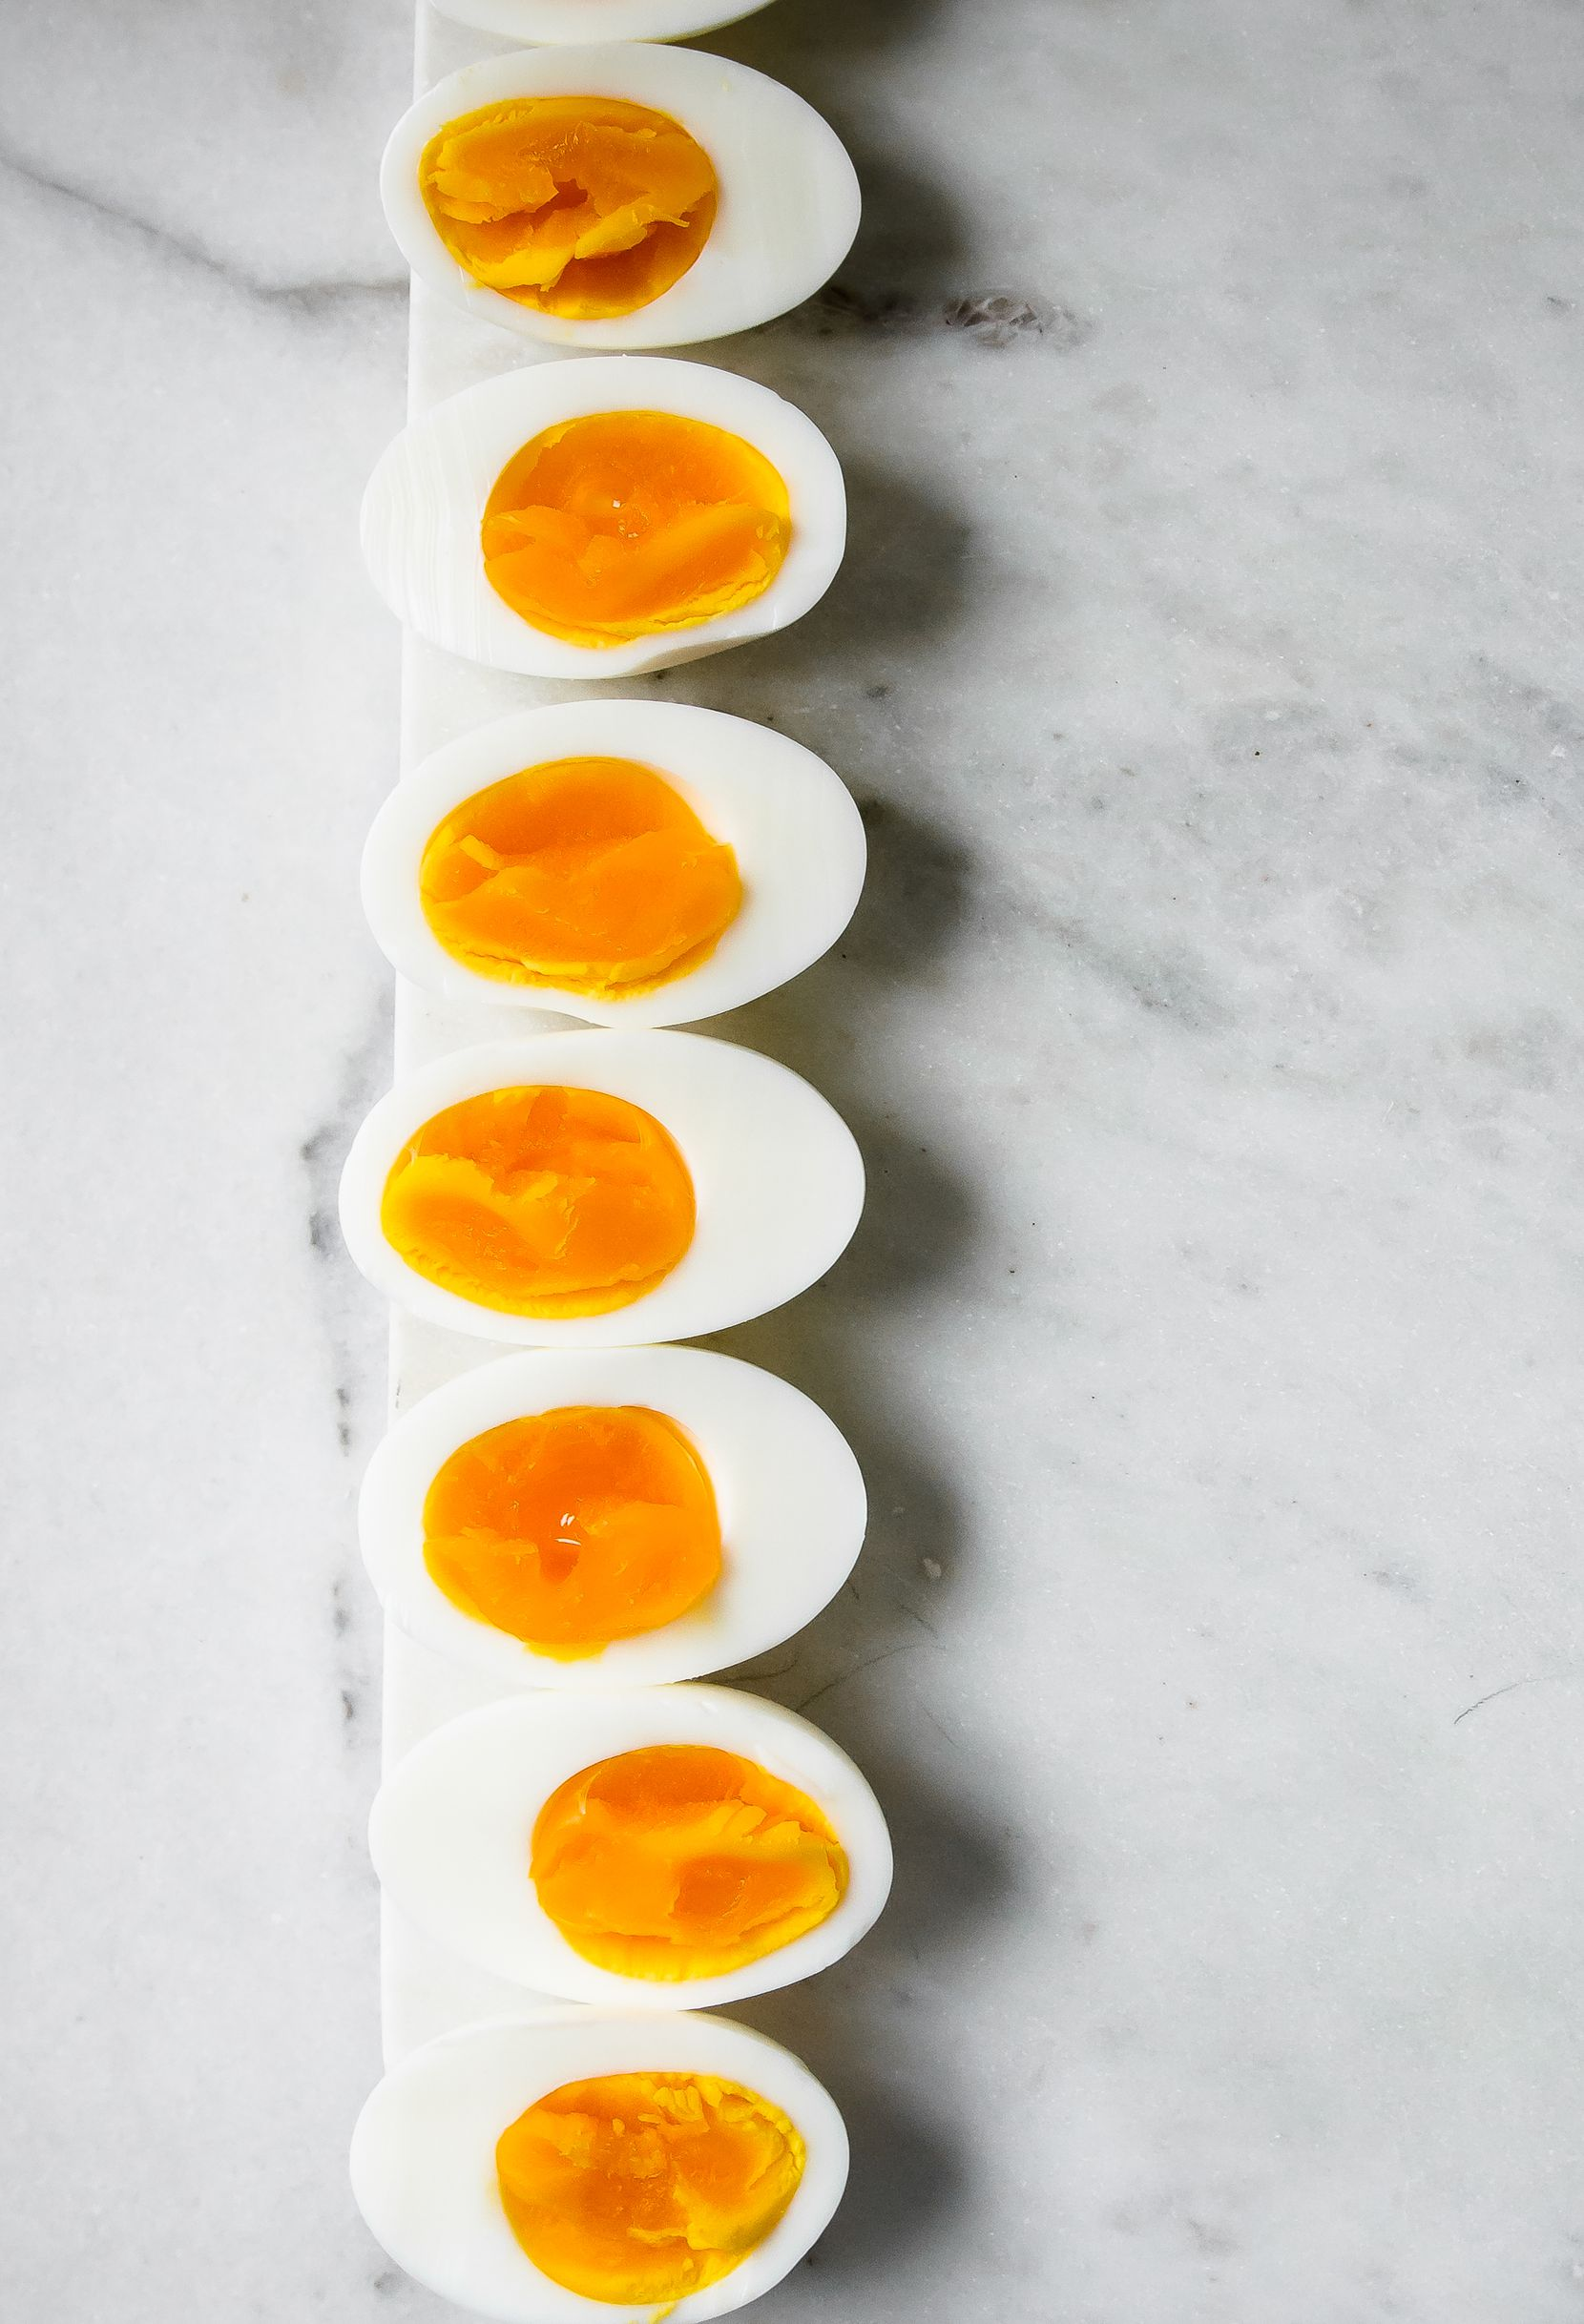 Kitchen Basics: How to make the perfect boiled egg